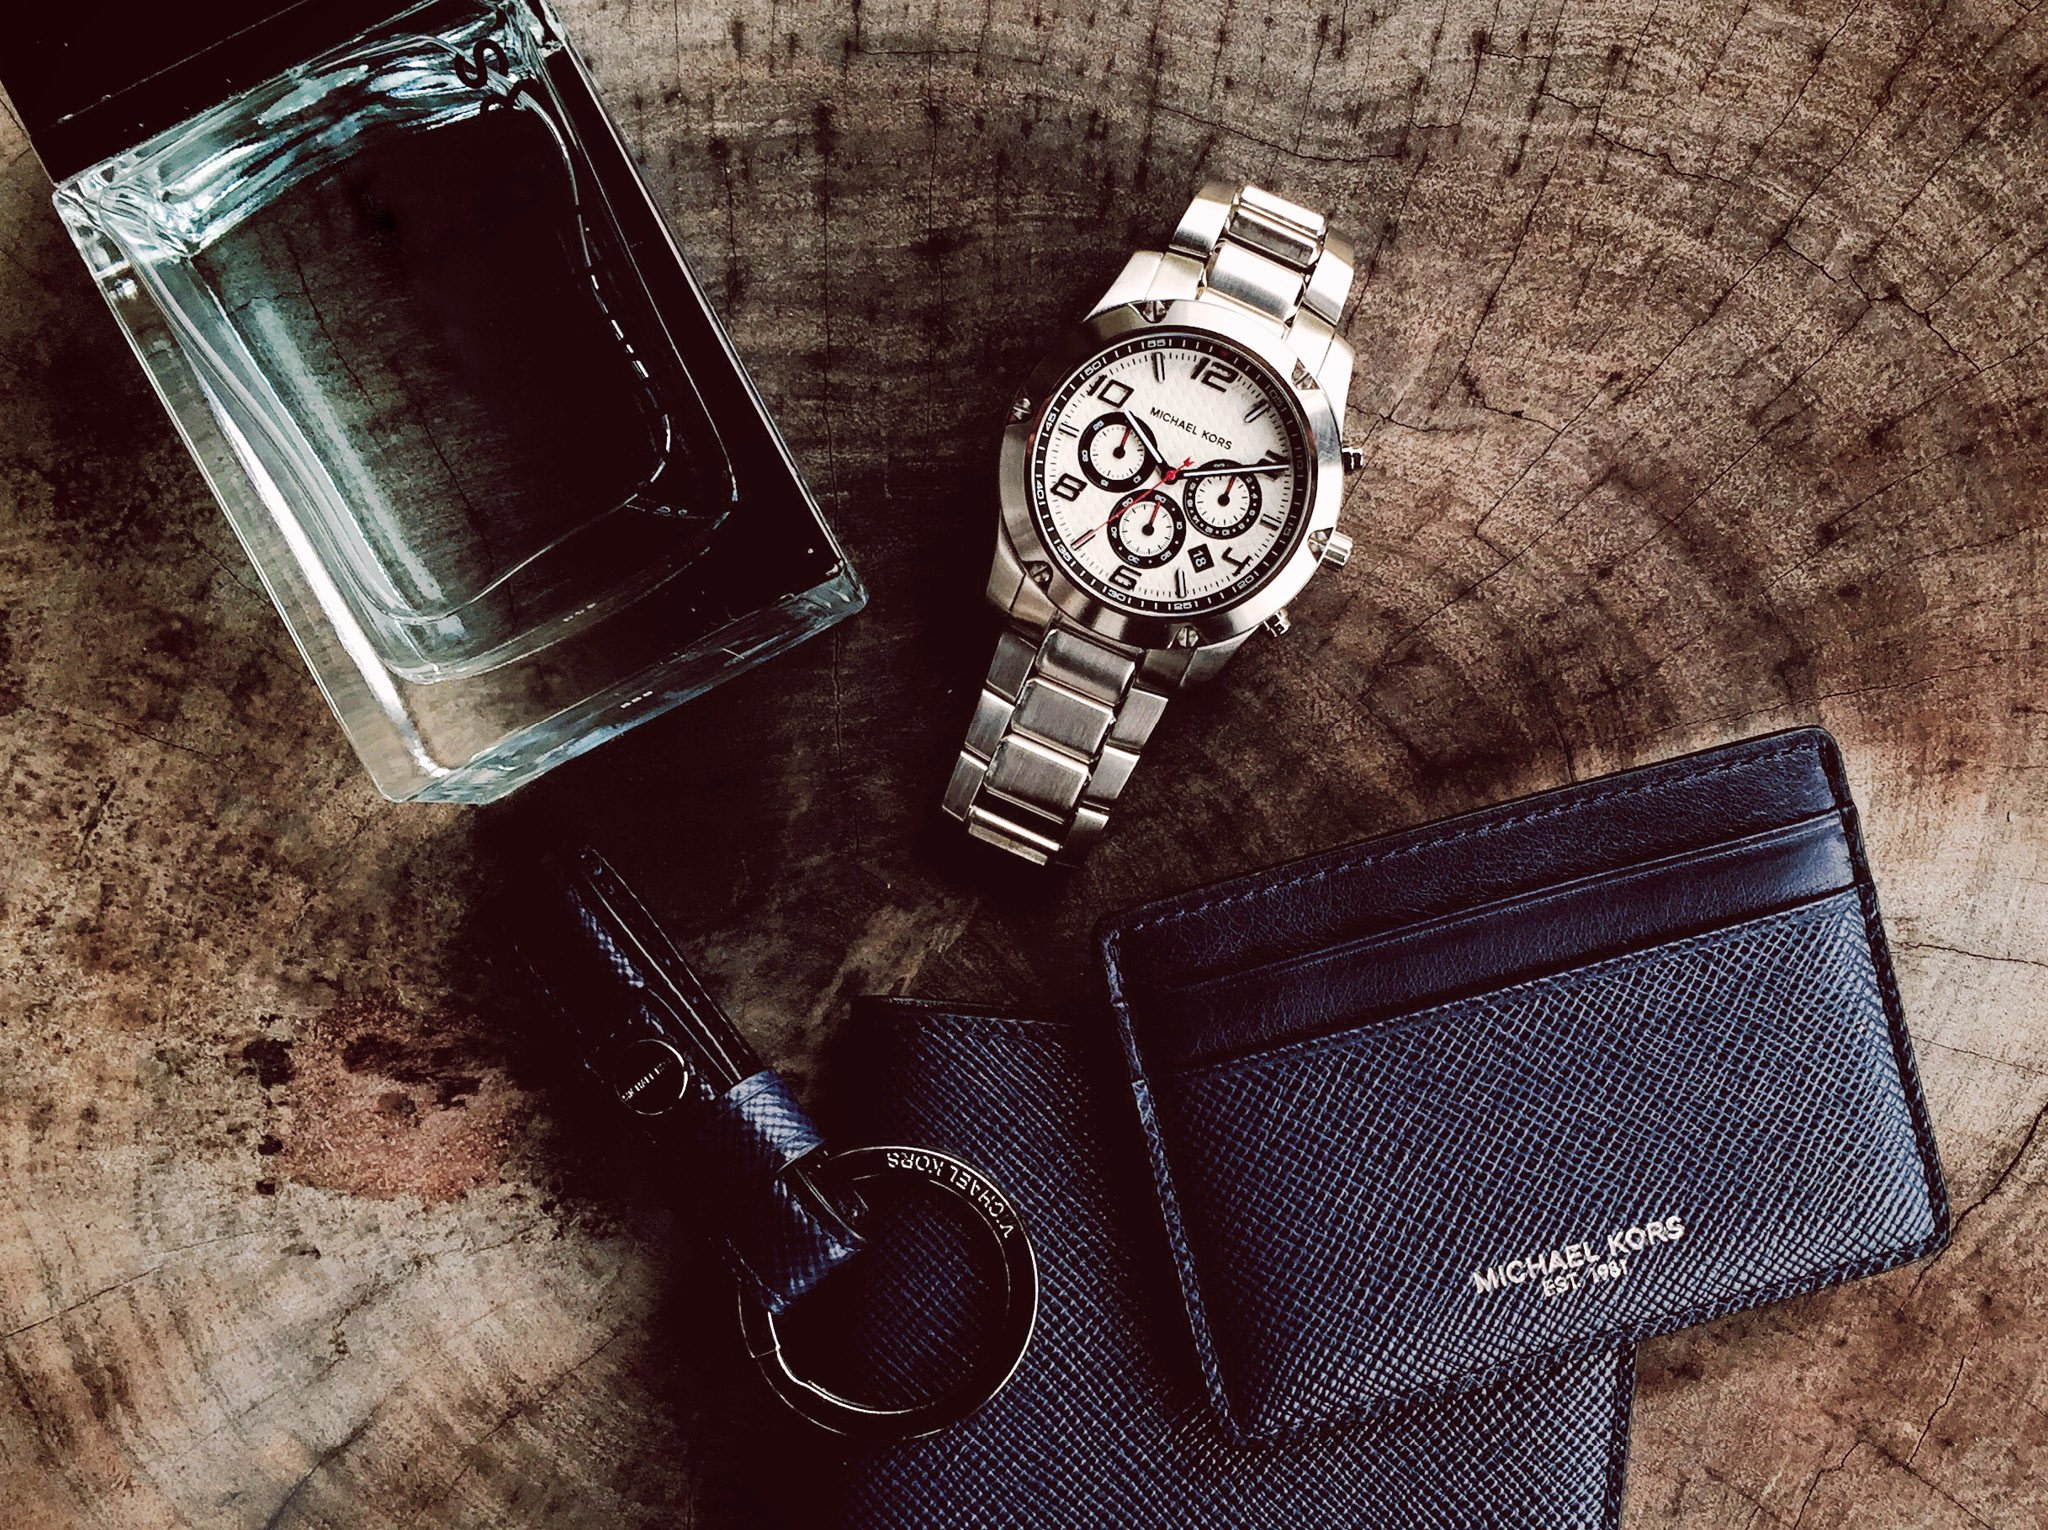 Make every minute count with these everyday essentials. https://t.co/ZhQzhk84sP #ToTheMan https://t.co/c1WUTEwTZK